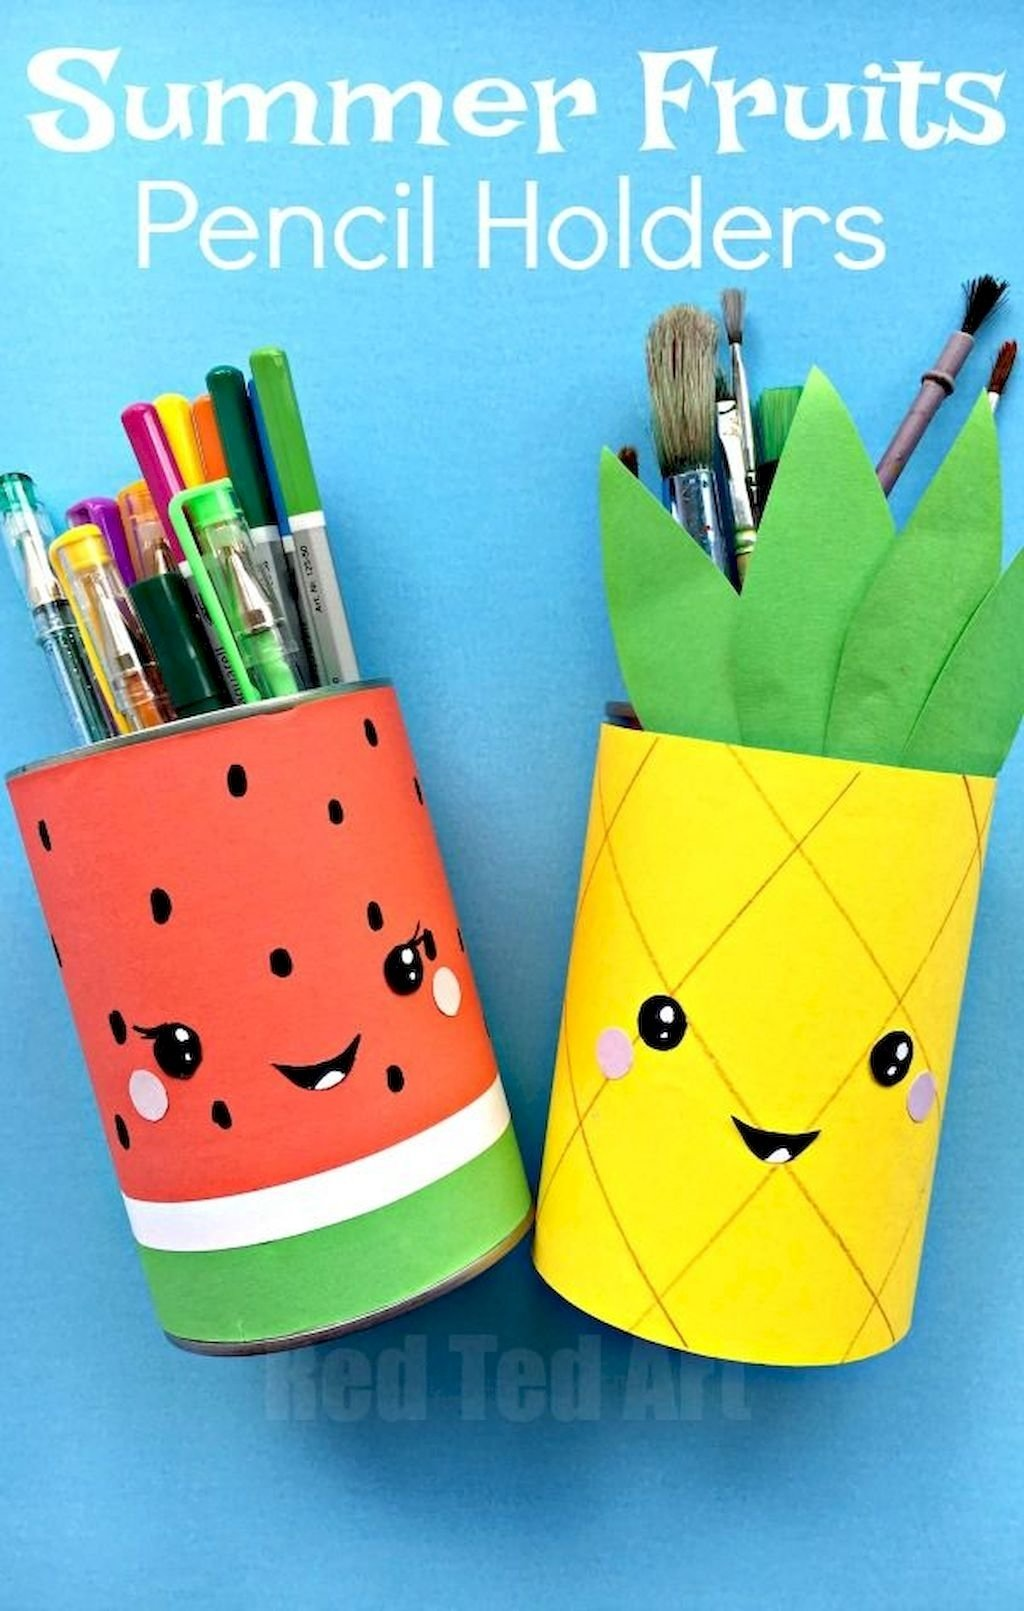 10 Perfect Easy Craft Ideas For Kids easy craft ideas for kids best cool craft ideas 2020